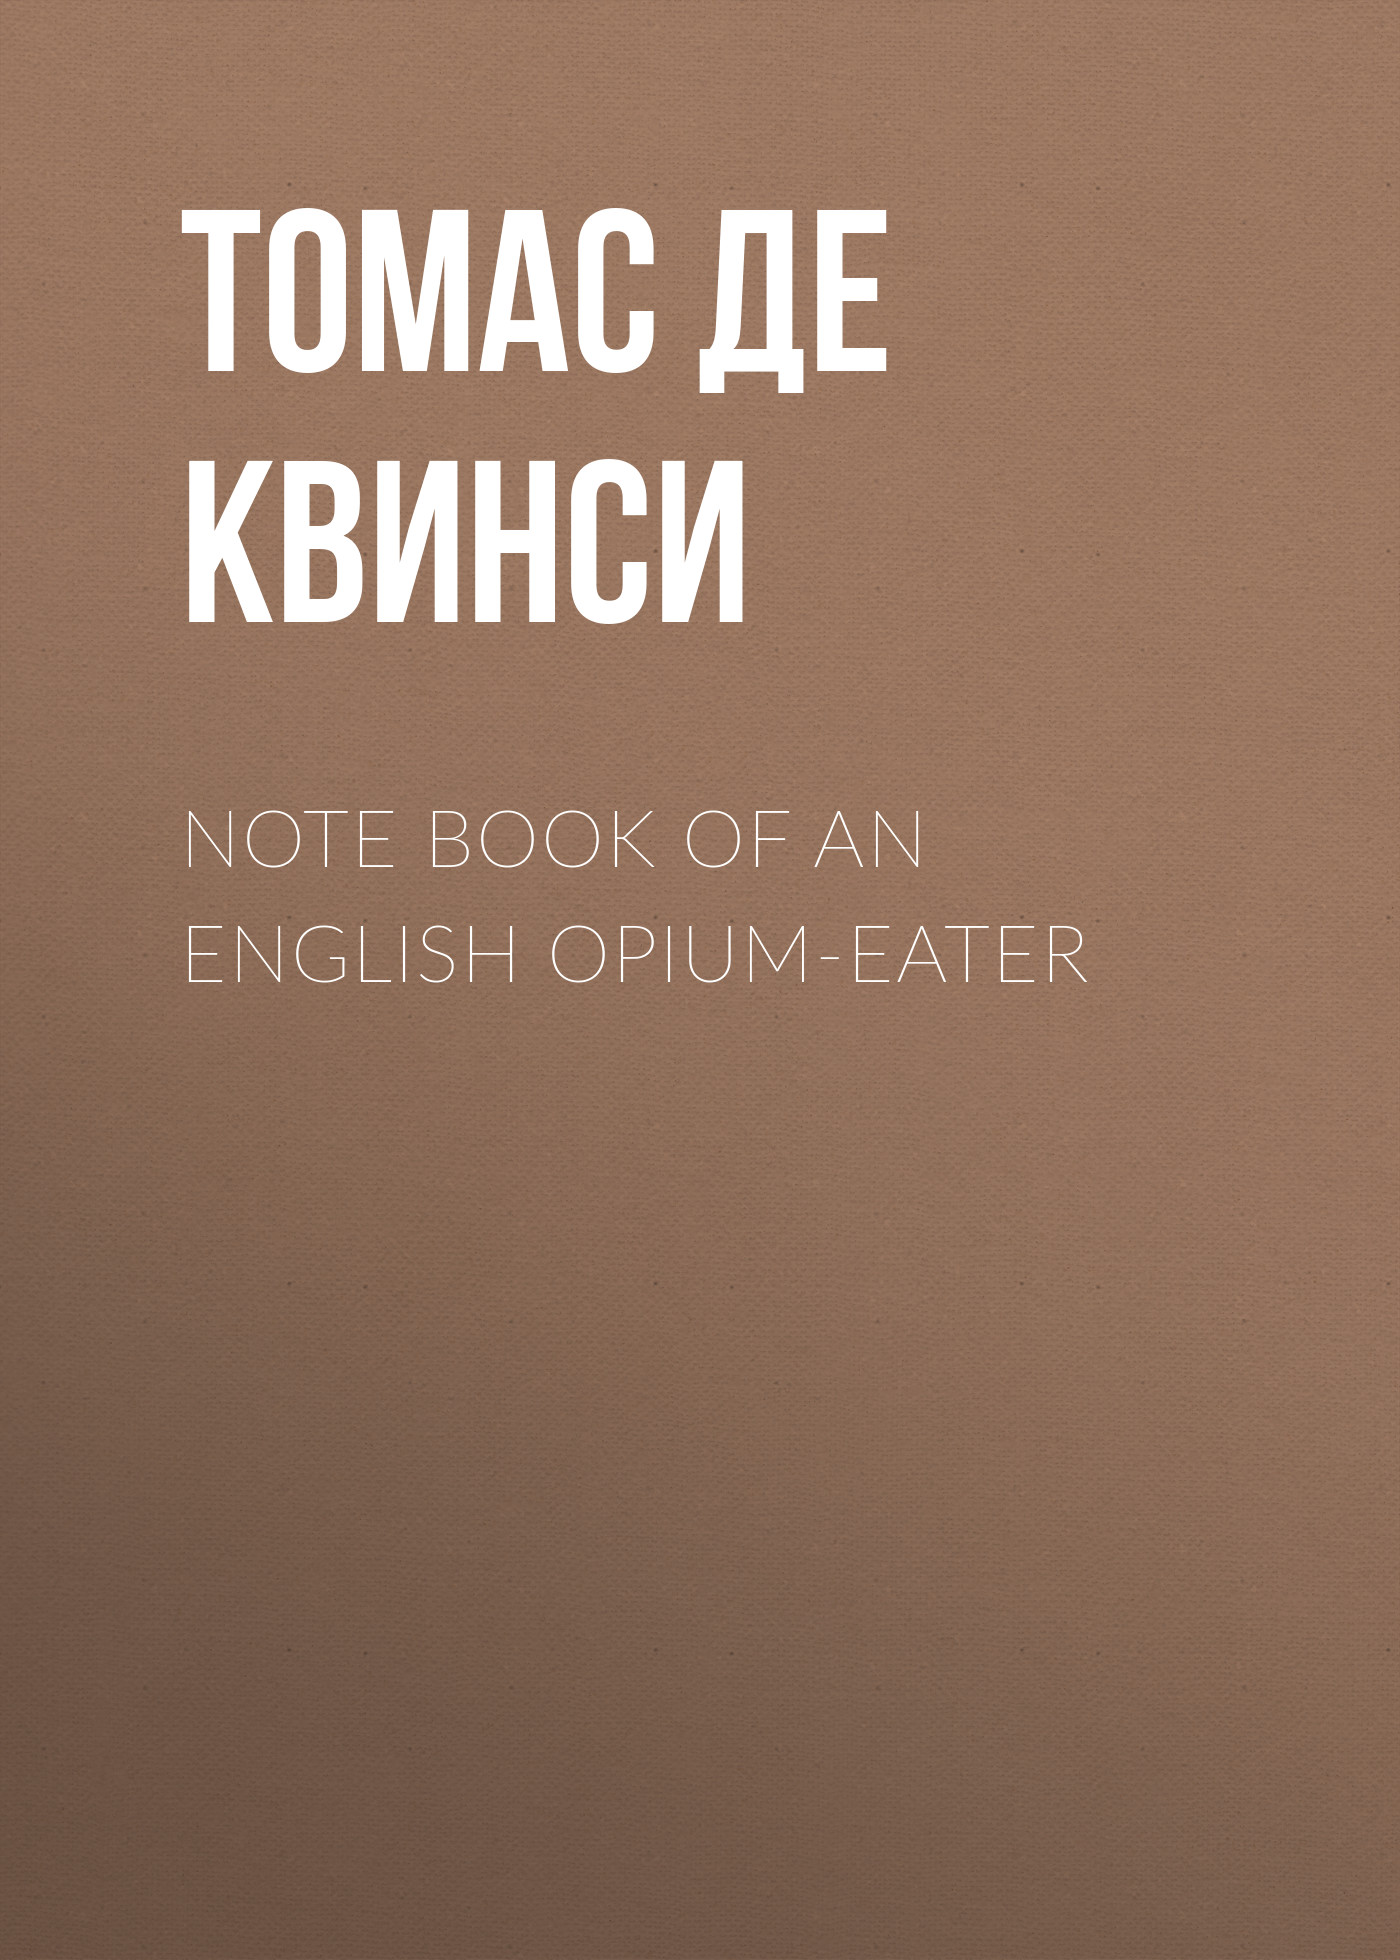 Томас де Квинси Note Book of an English Opium-Eater томас де квинси the uncollected writings of thomas de quincey vol 1